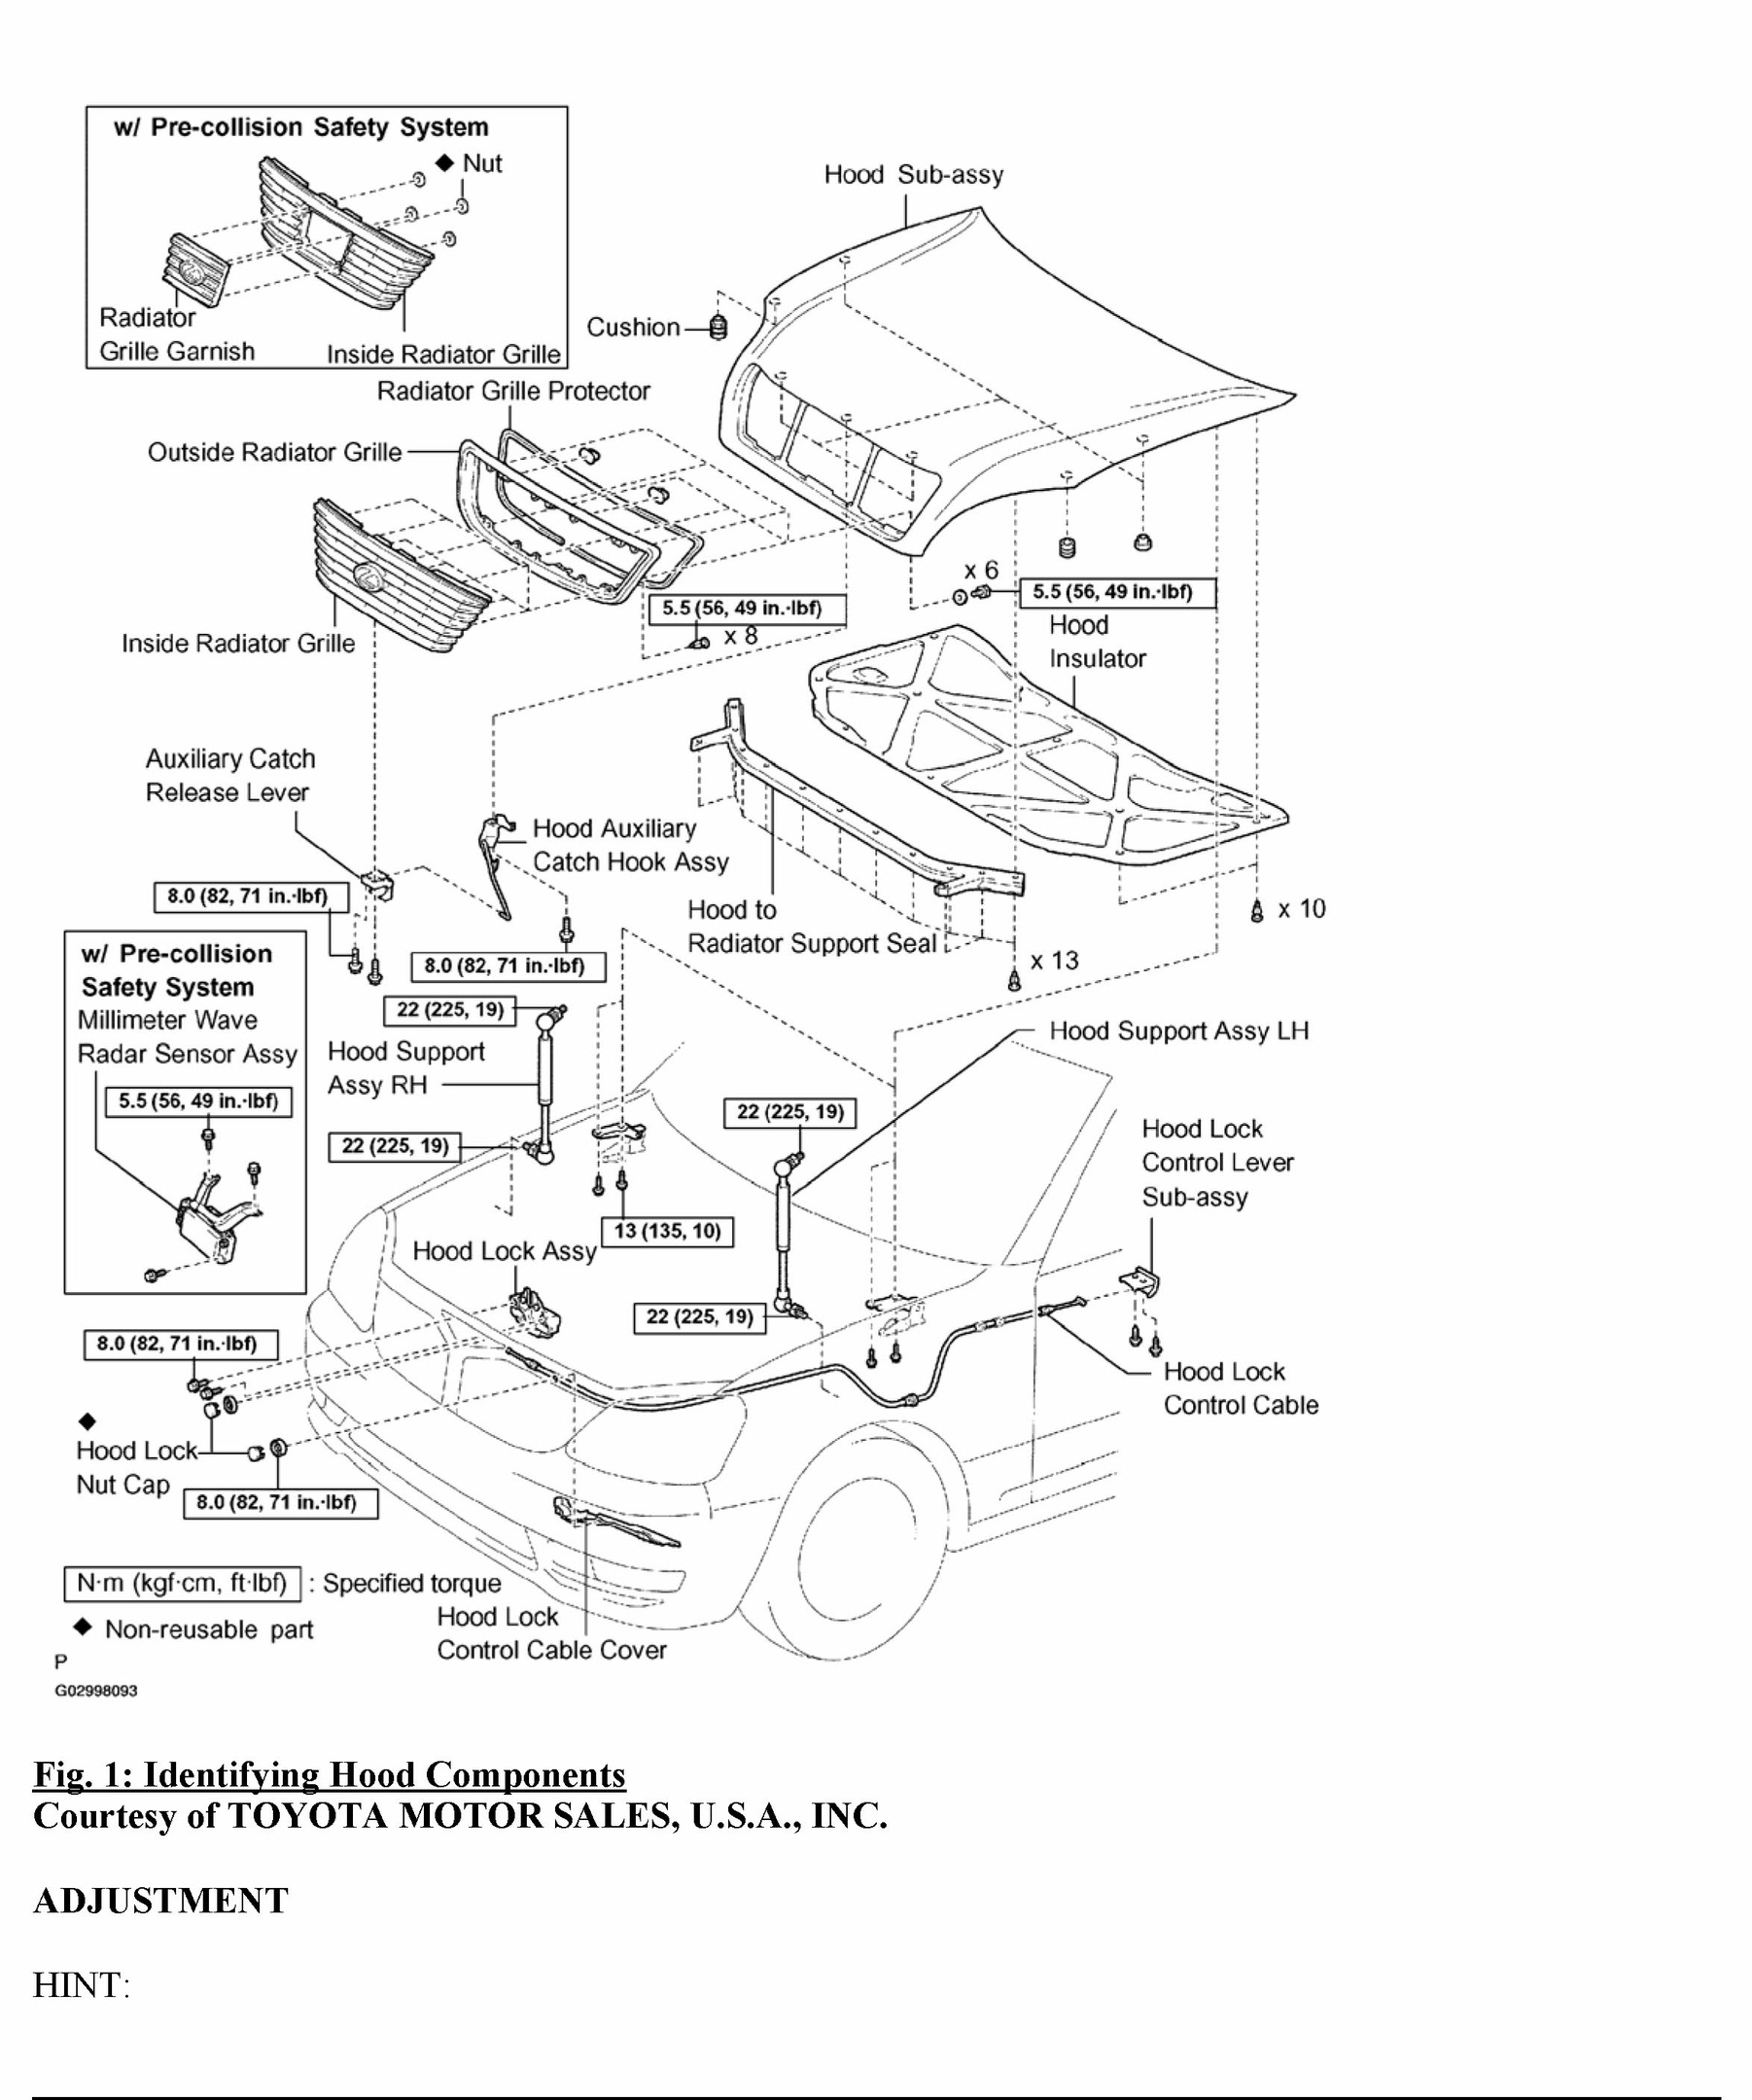 D Gs Project Img in addition Jx Yc Hpas besides Parts Location A E C D Ce Ea E Ea Dca Bfe C further  likewise D How To Change Gs Sensor Bank Sensor Code P Bank Sensor Diagram. on o2 sensor diagram lexus gs 300 2003